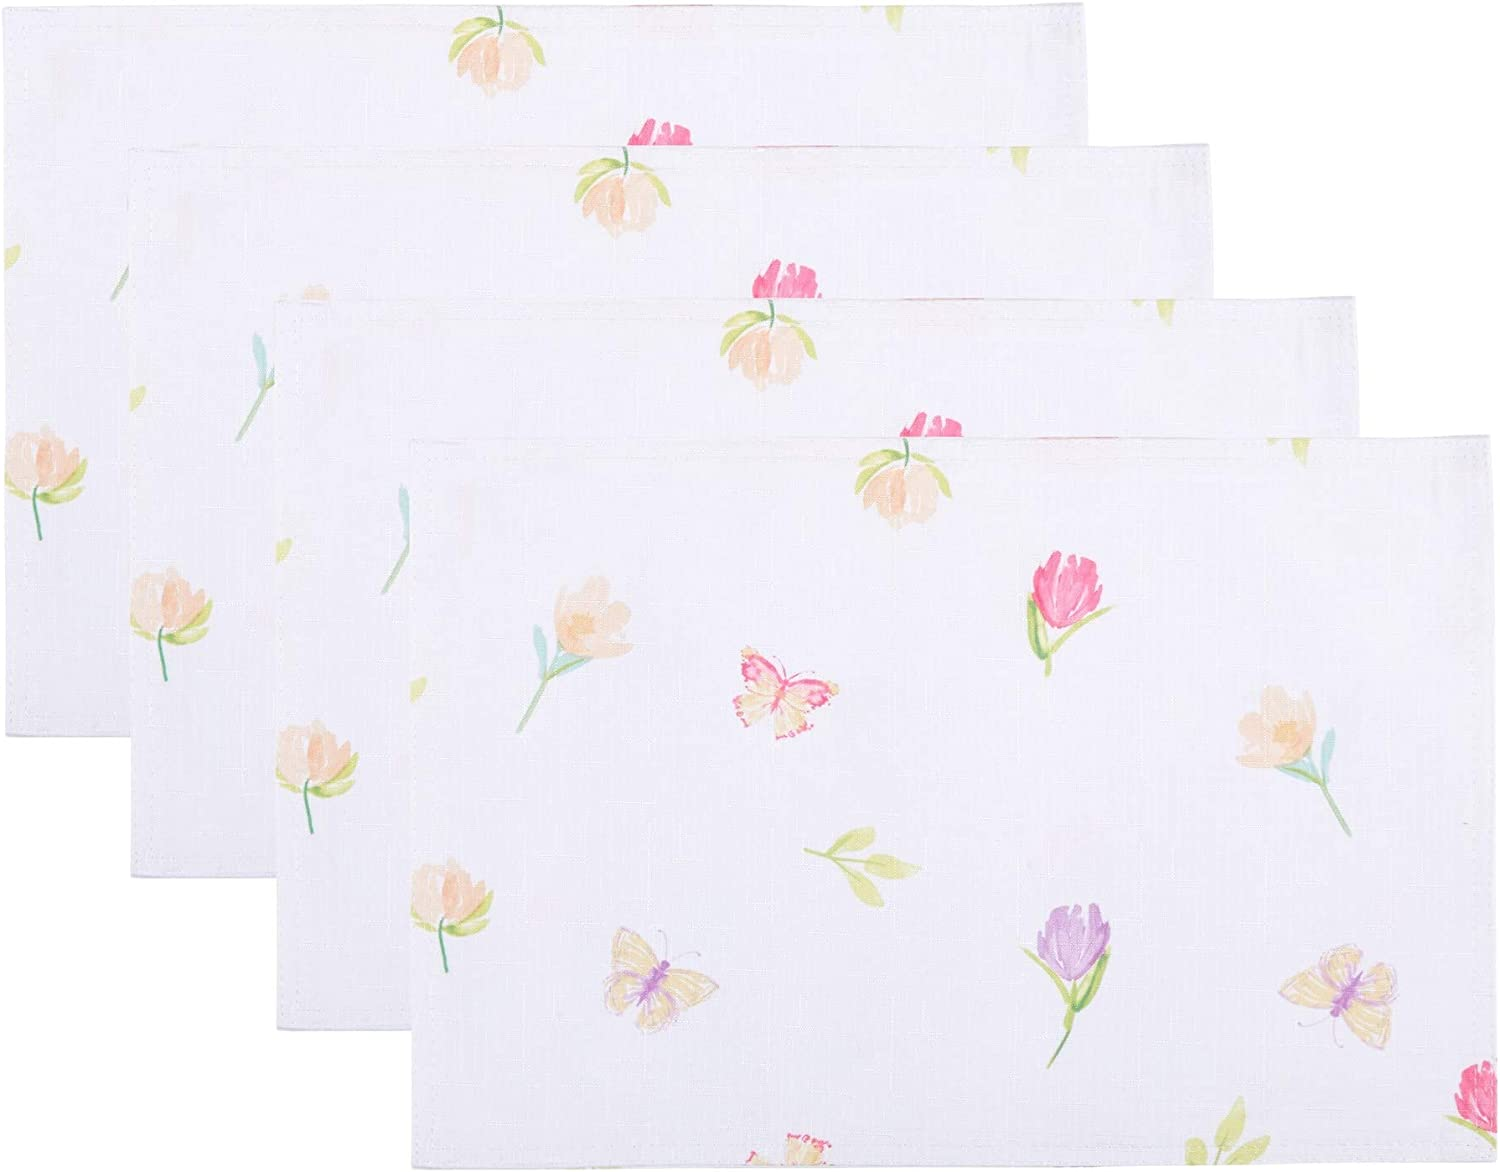 Bunnies at Play Easter Pastel Print White Background Floral Polyester Fabric Place Mats (Set of 4 Placemats)